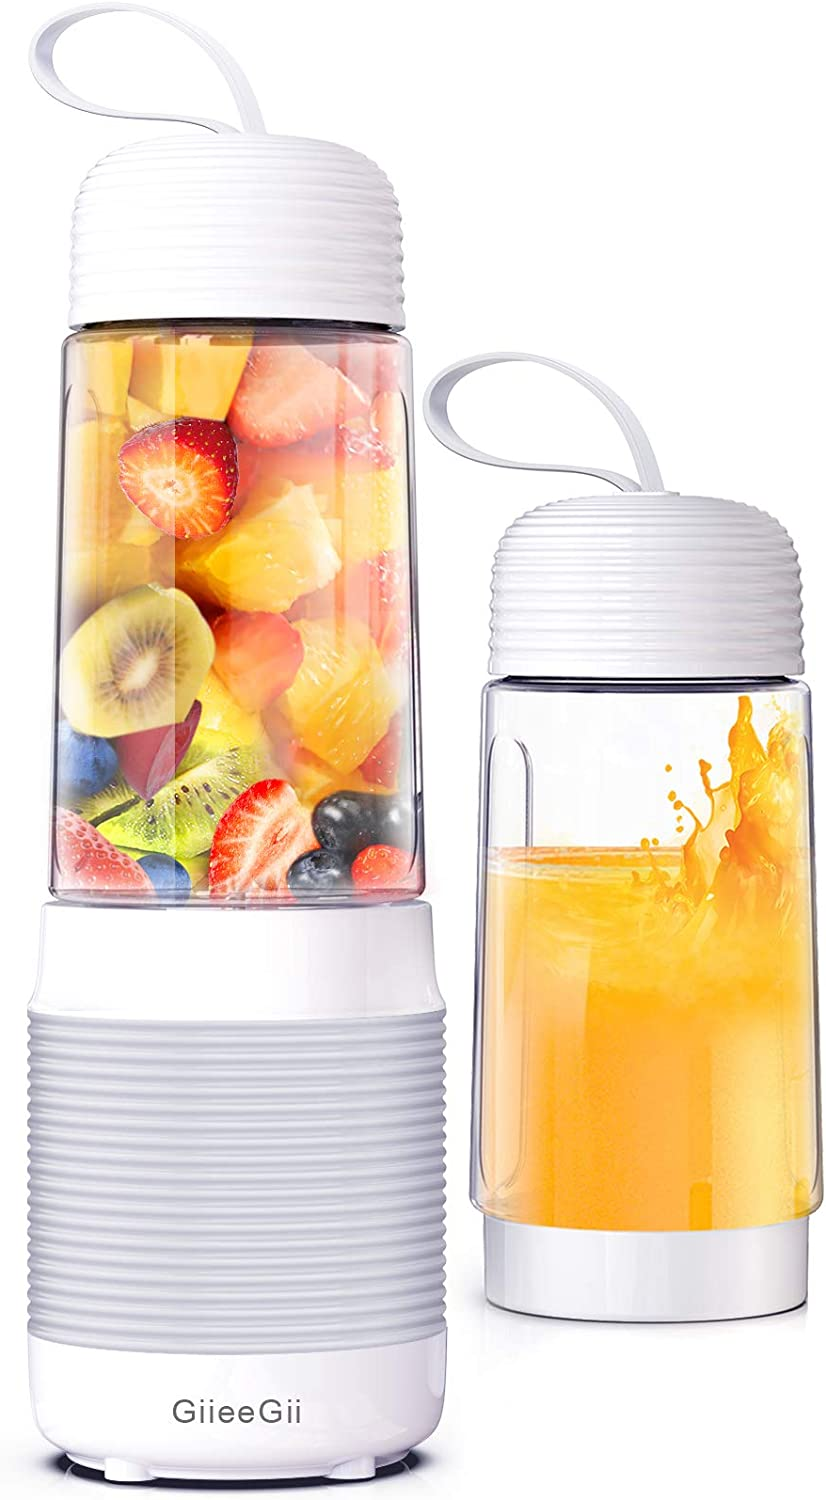 [Newly Version] Portable Blender,GiieeGii Handheld Blender,13.5 Oz Personal Blender for Smoothies and Shakes,Baby Food,Fresh Juice,Facial Mask,4000mAh USB Rechargeable with Six Sharp Blades,75W High Power,Mini Blender for Home,Office,Travel,Sports and Outdoors